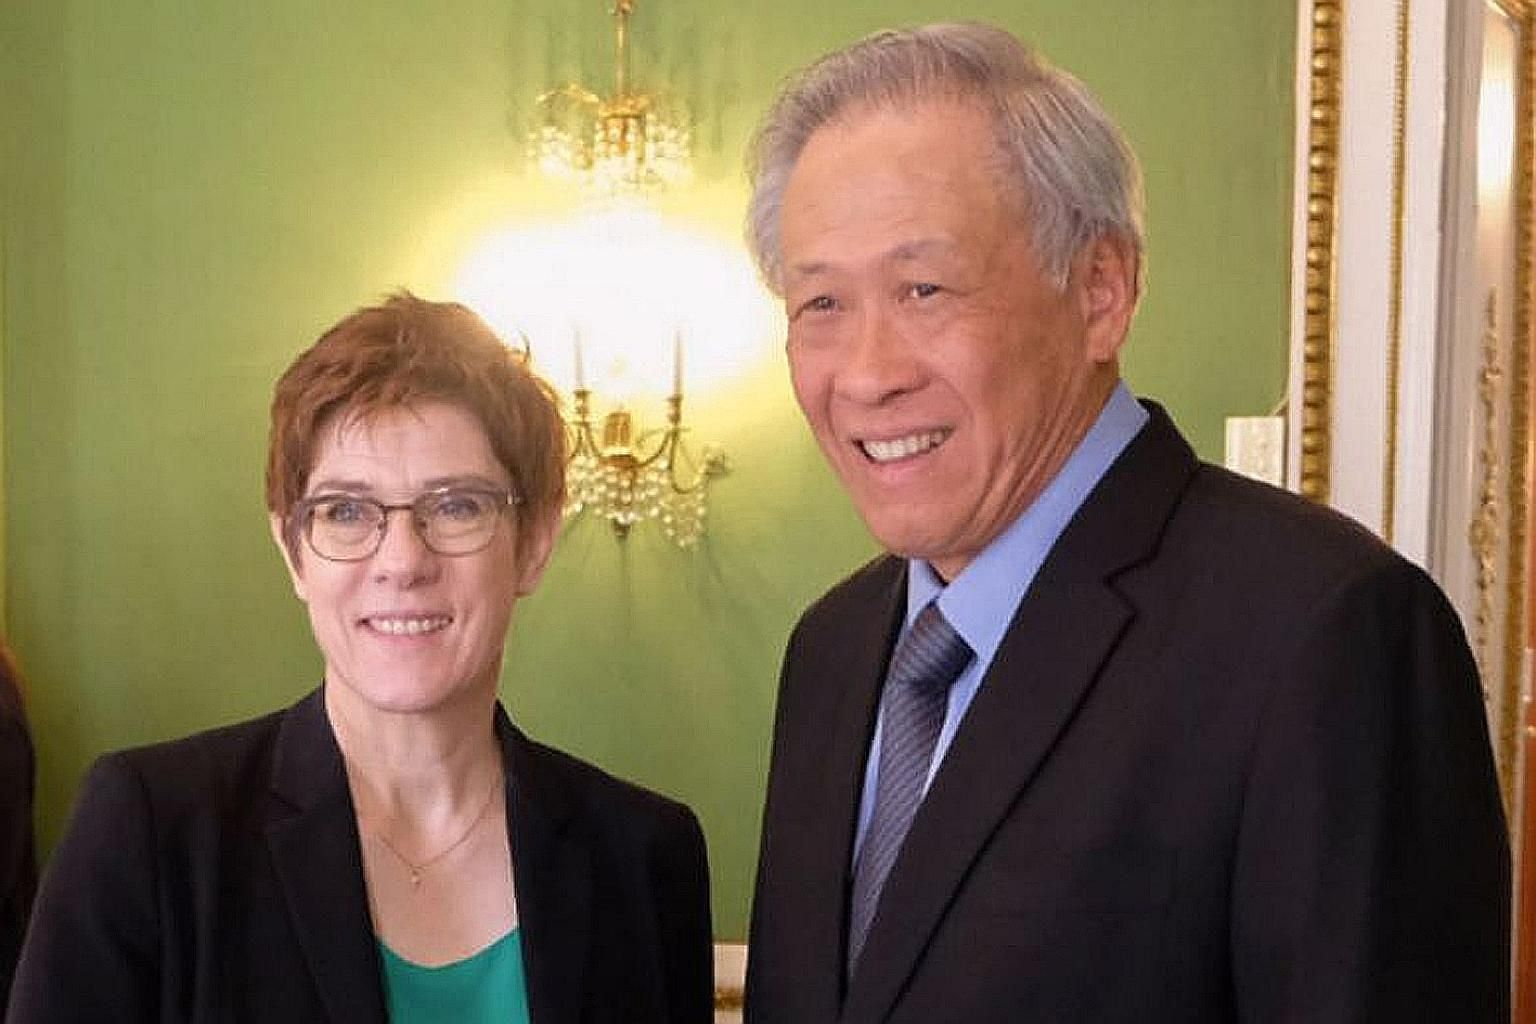 Minister for Defence Ng Eng Hen met his German counterpart Annegret Kramp-Karrenbauer on the sidelines of the 56th Munich Security Conference in Germany.